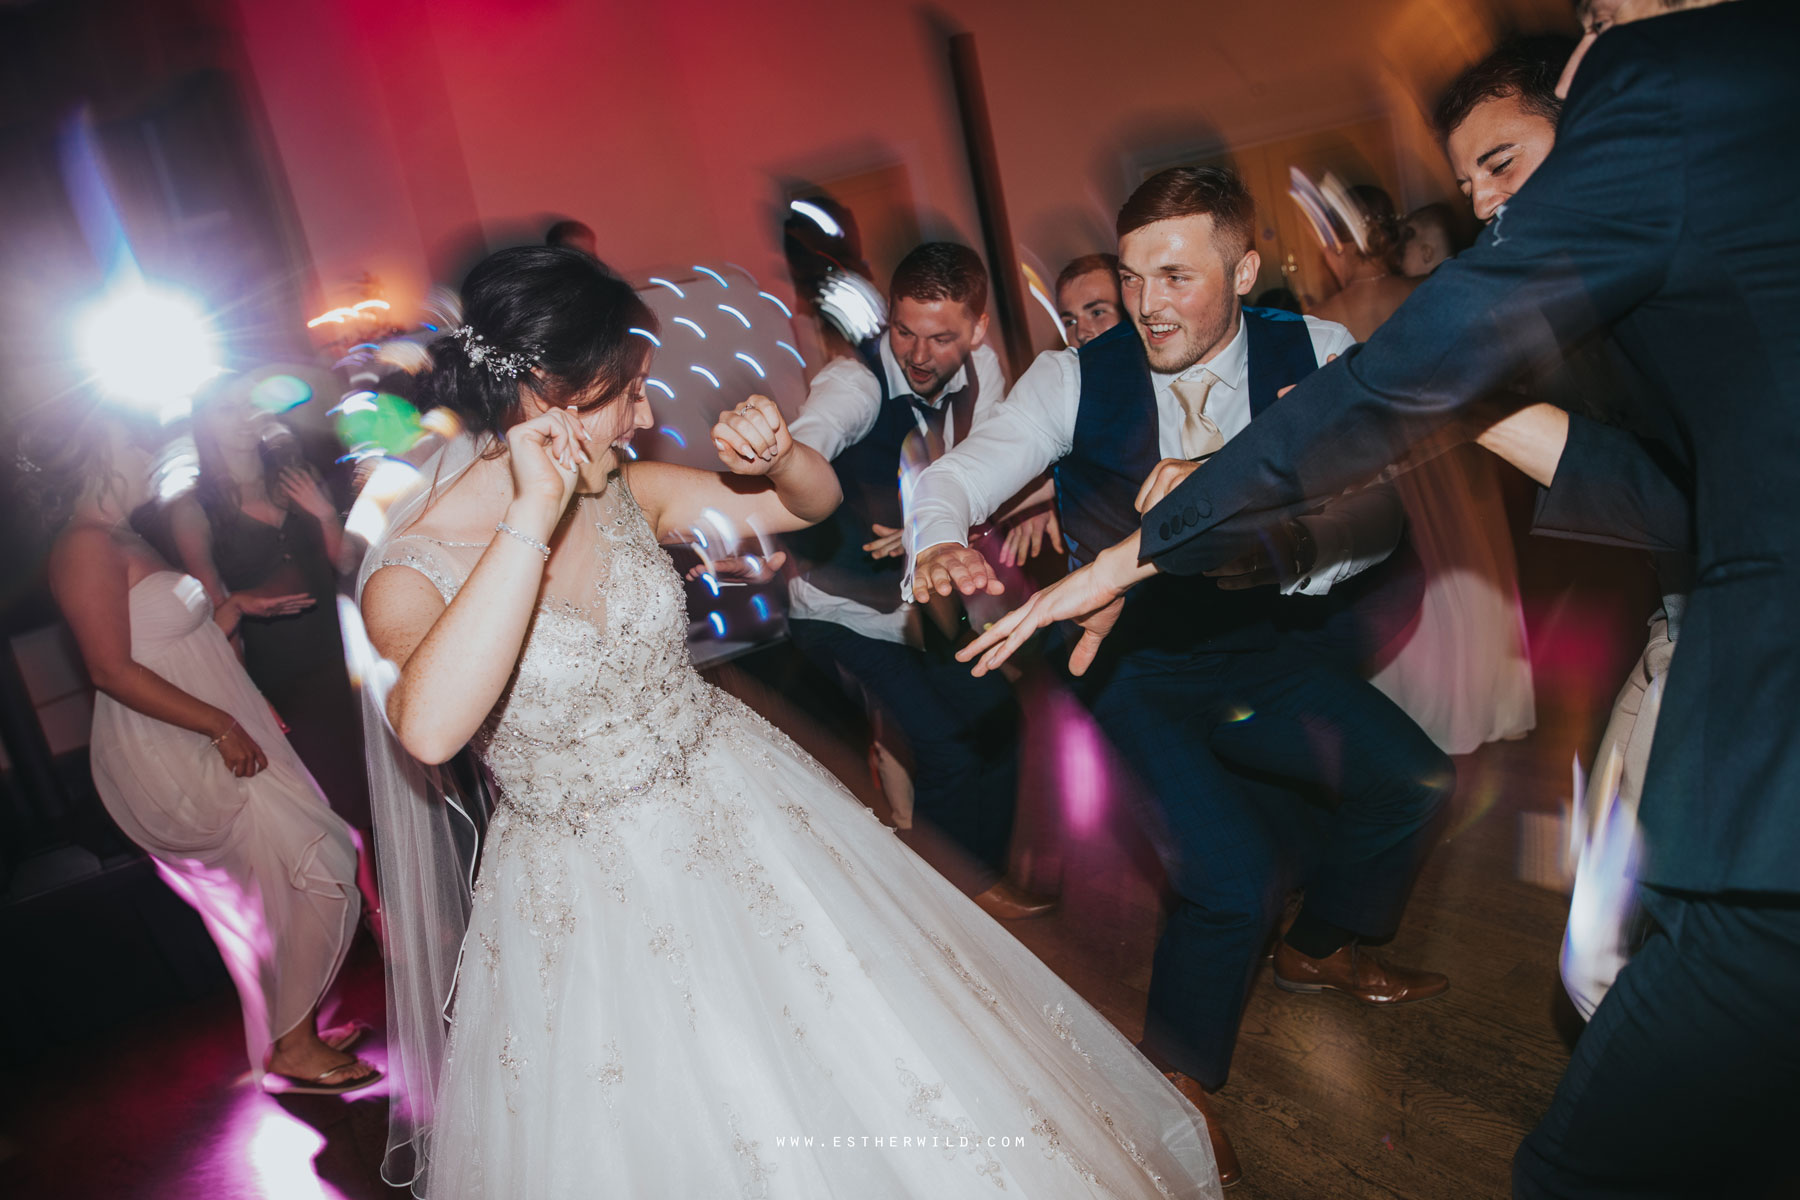 Lynford_Hall_Wedding_Thetford_Mundford_Esther_Wild_Photographer_IMG_3649.jpg